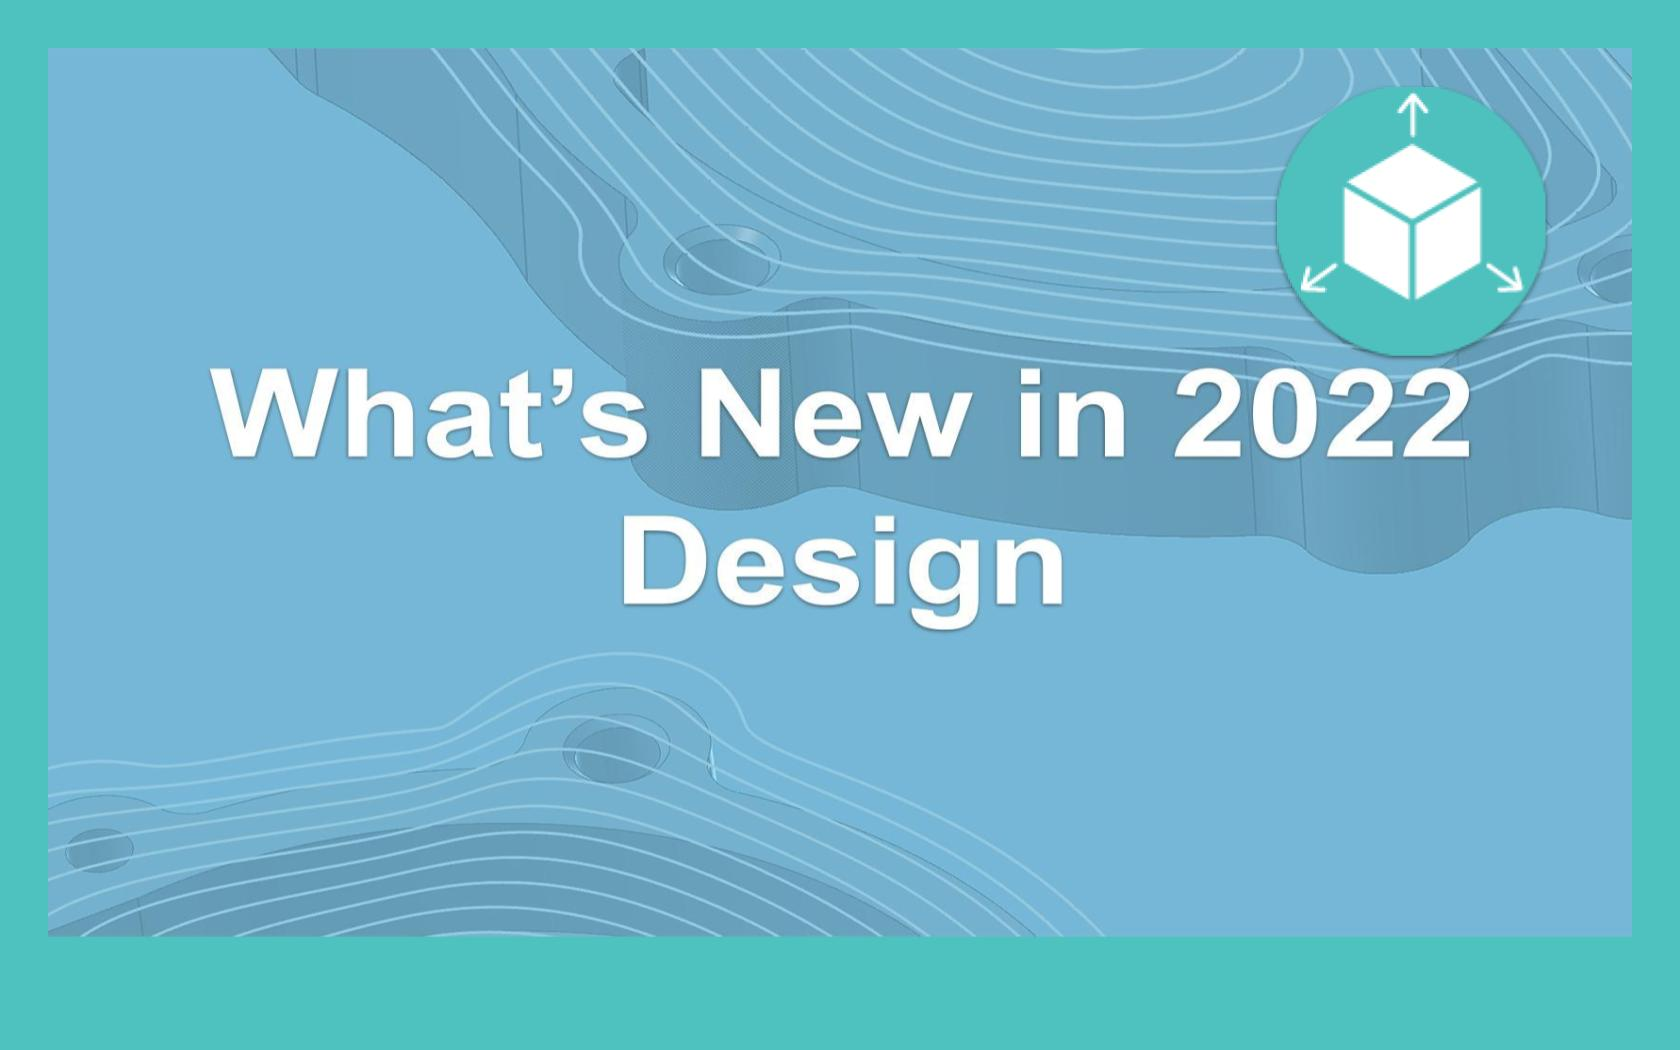 What's New in 2022 - Design